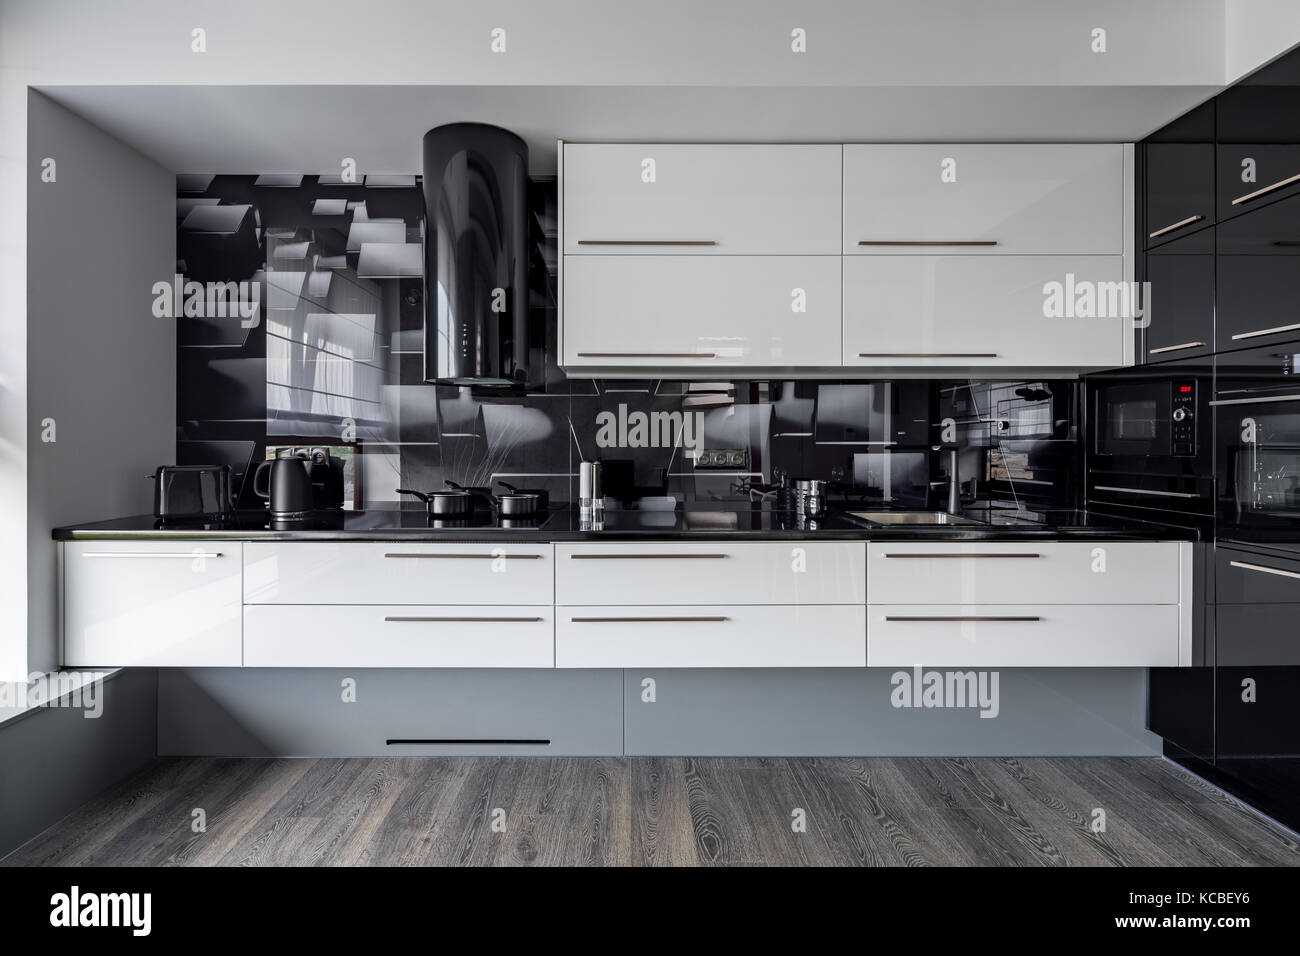 Modern Kitchen With White Cupboards And Black Wall Tiles Stock Photo Alamy